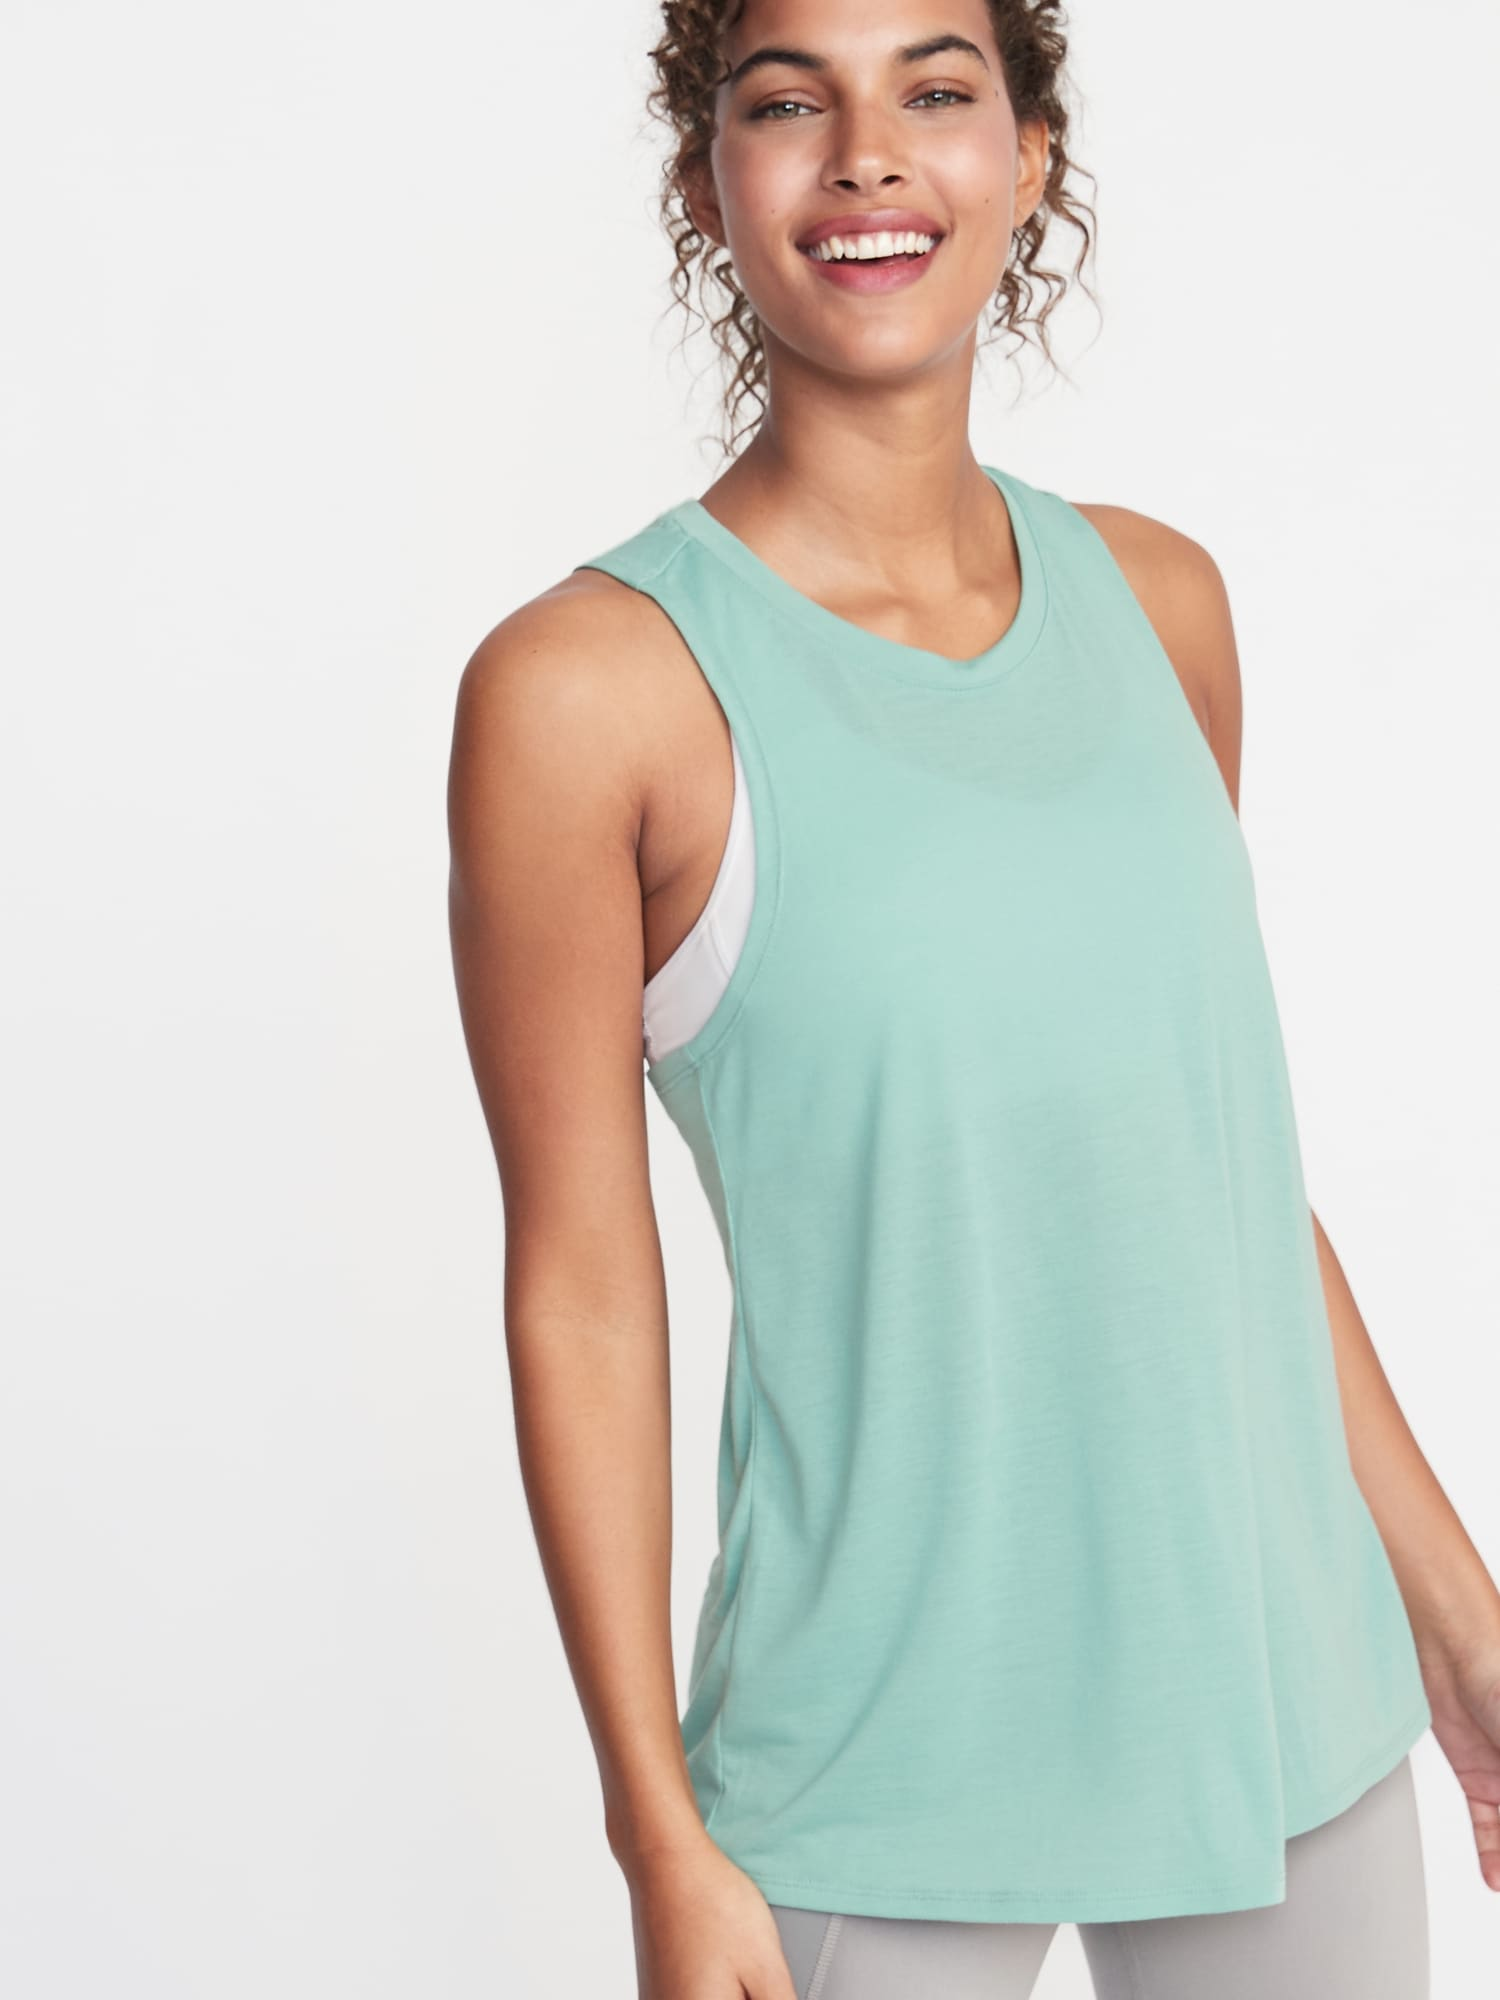 ae94df6f787d0 Relaxed Lightweight Cross-Back Performance Tank for Women